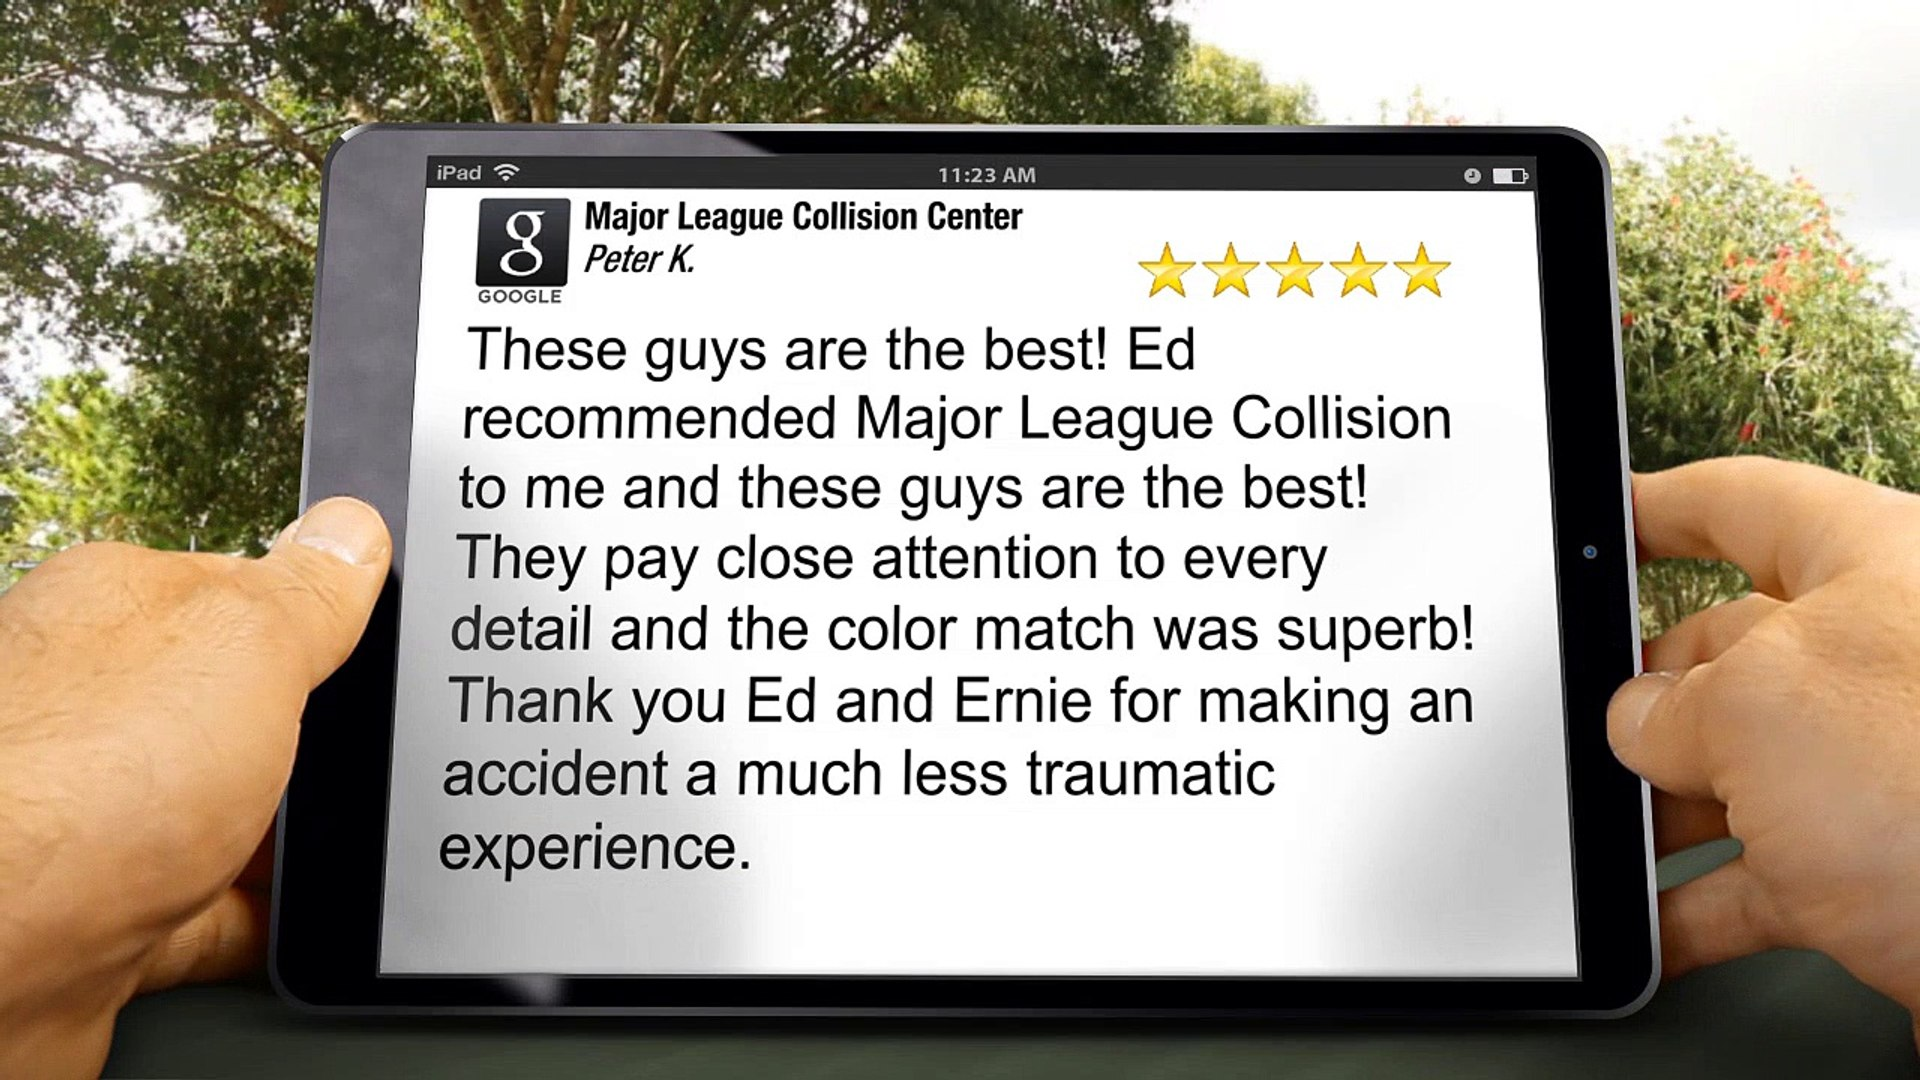 Major League Collision Center MesaRemarkable5 Star Review by Peter K.